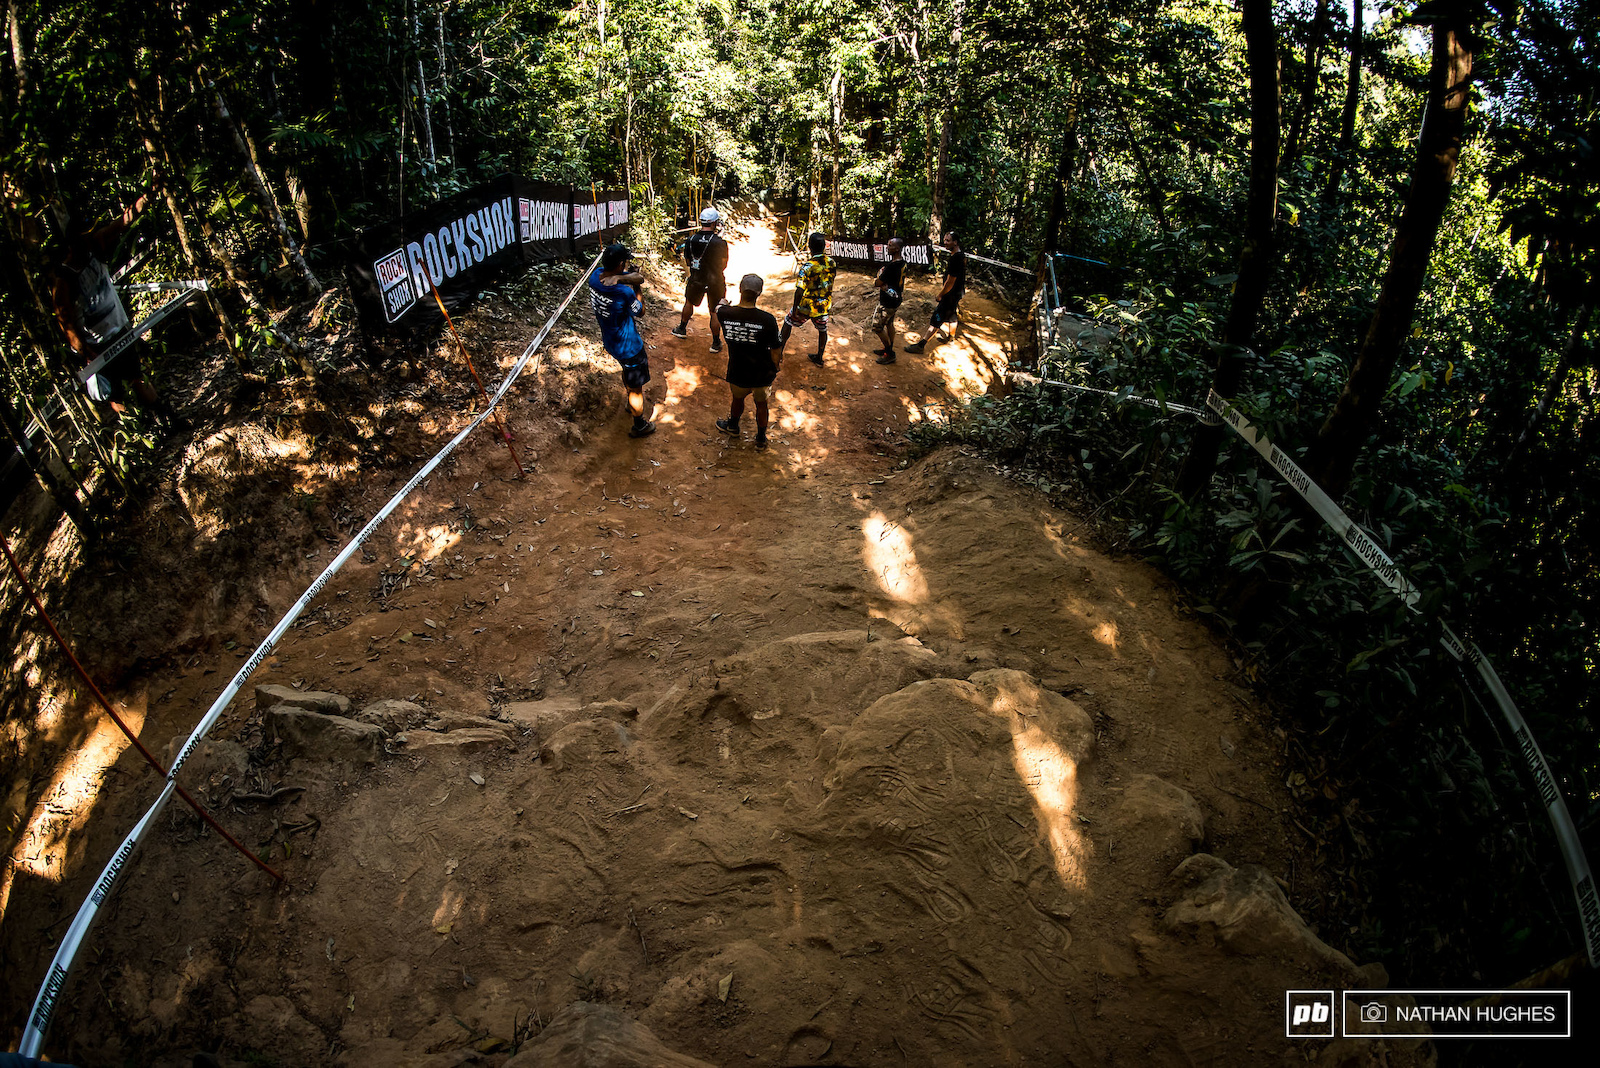 The final chute ever a problem area at race speed although preferable in dust to axle deep mud a la 2014...